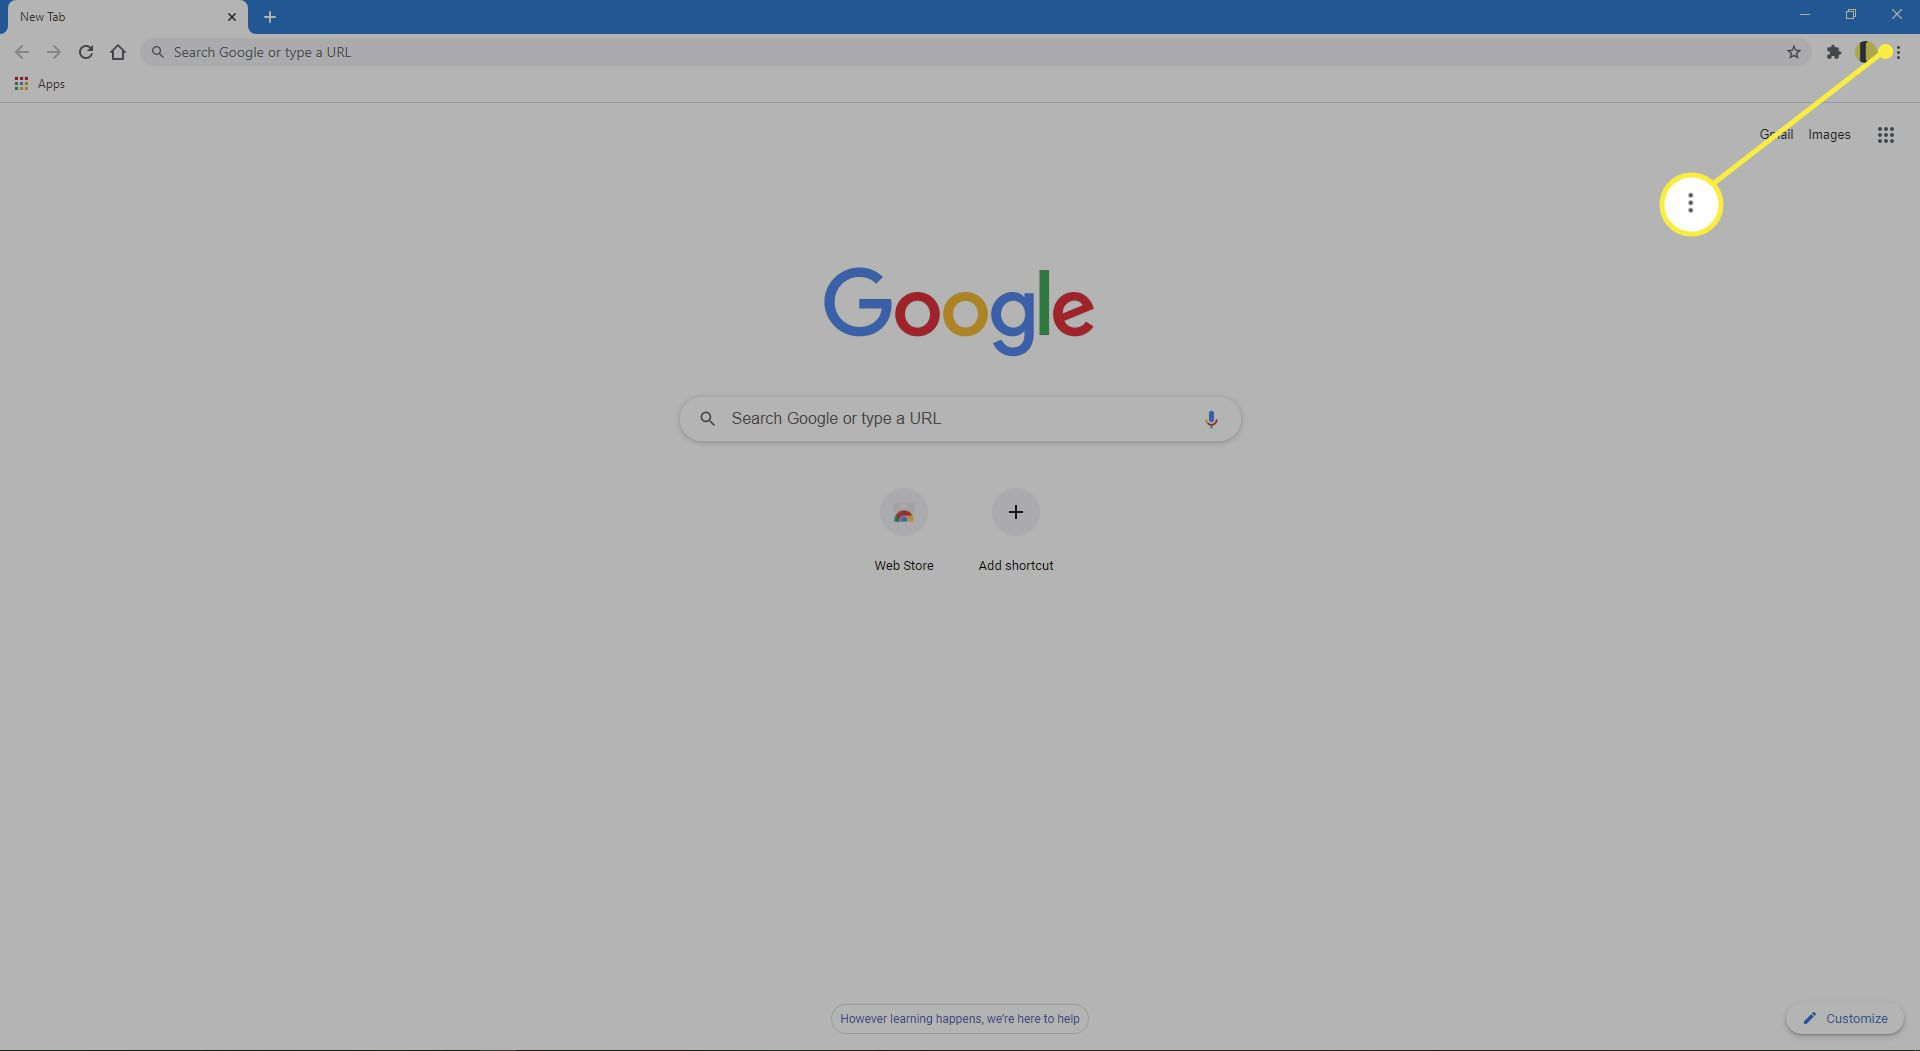 Google Chrome on the Google search page.